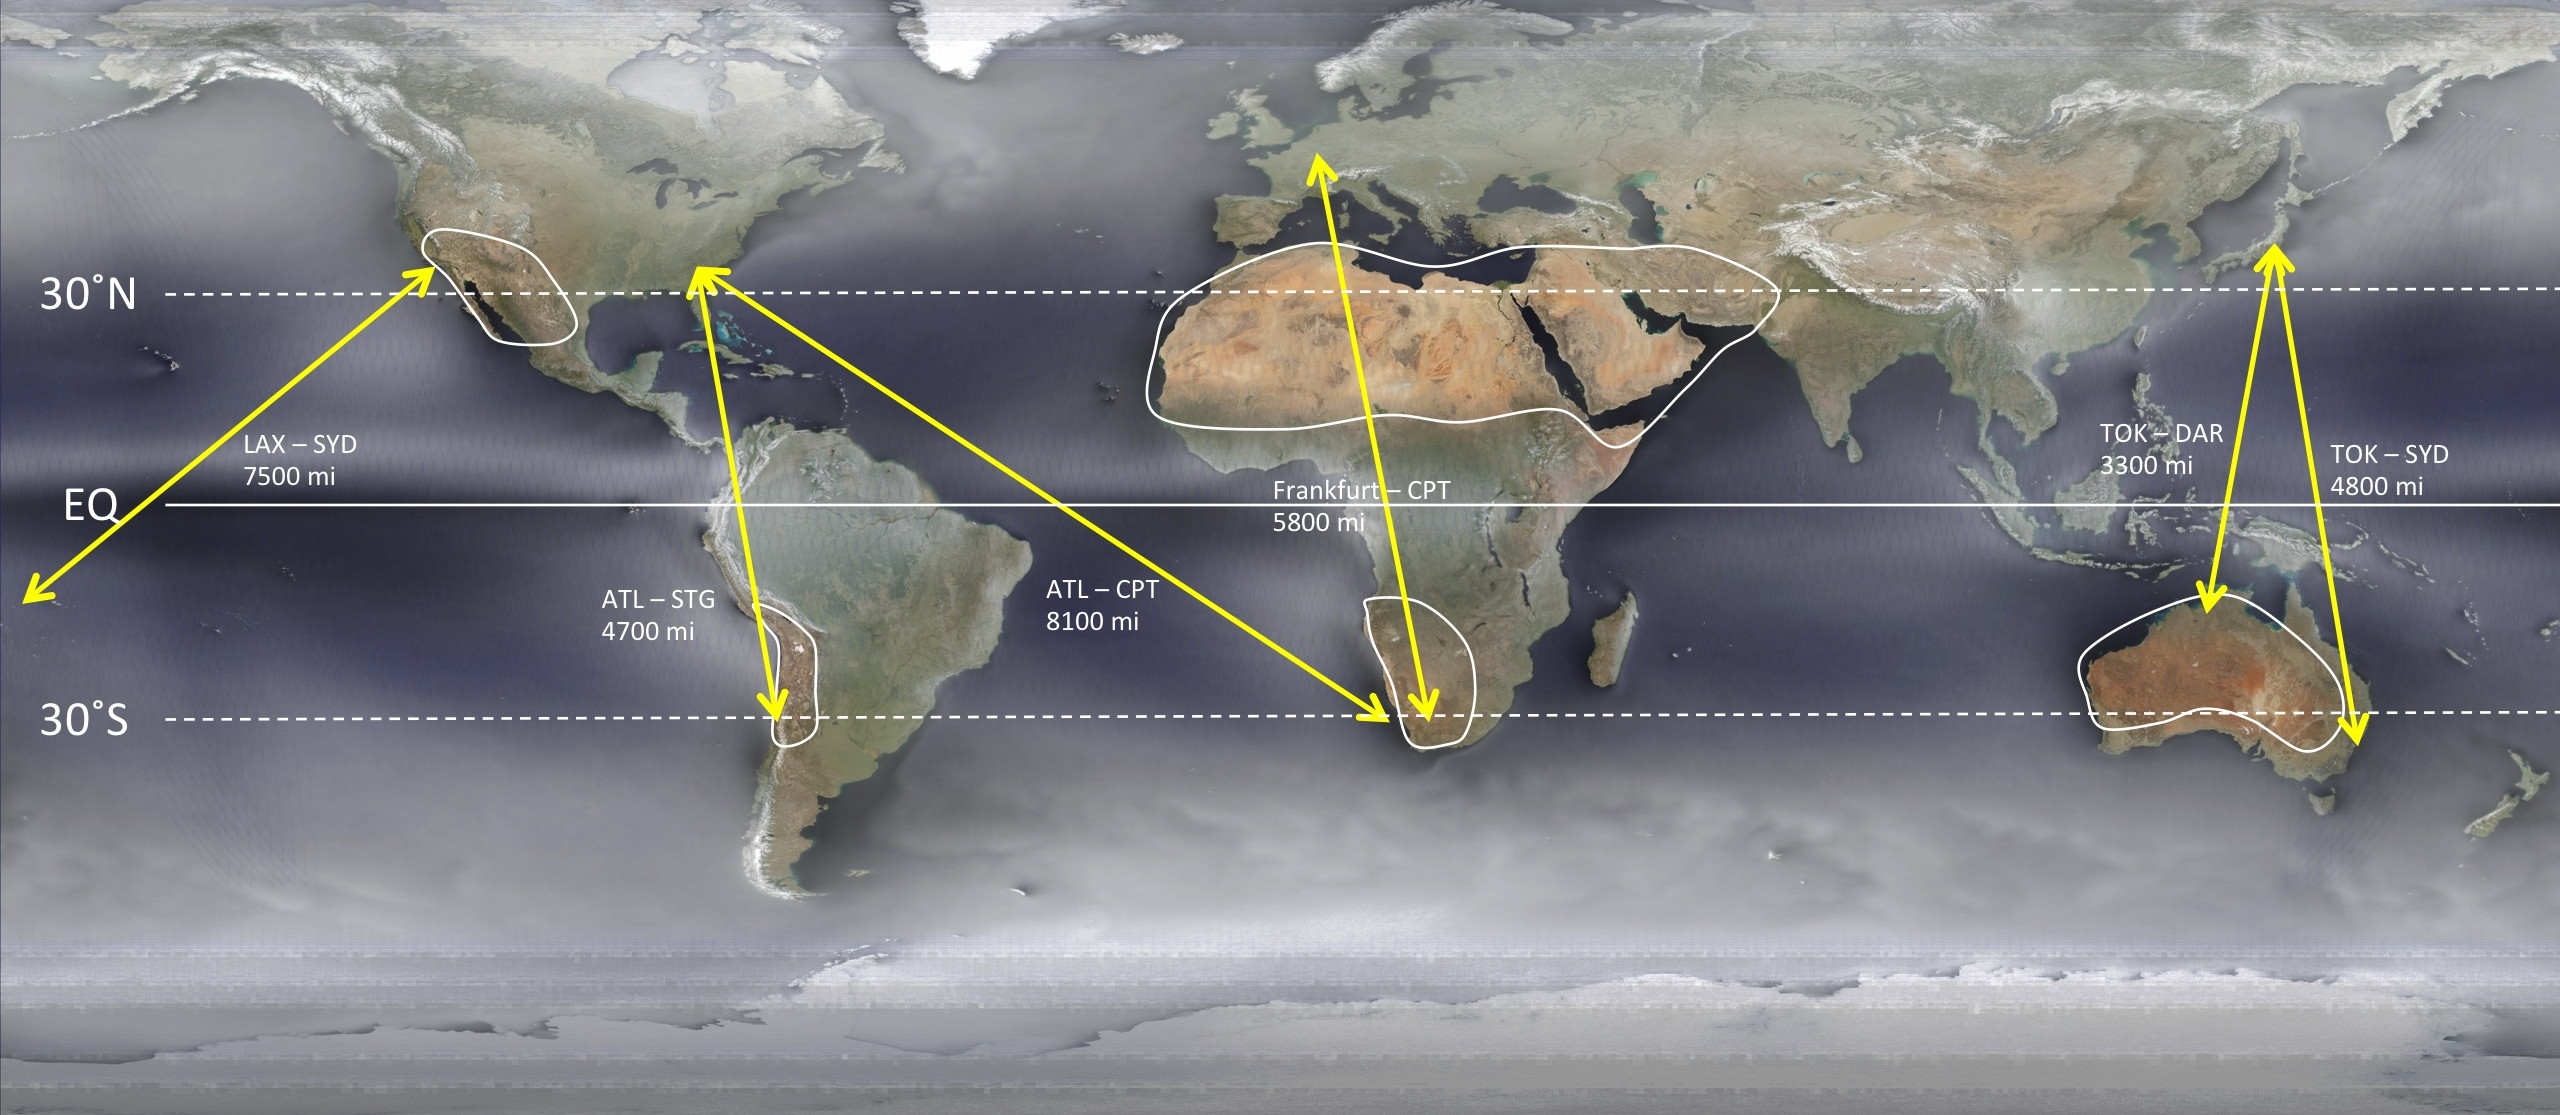 TRAVEL ROUTES TO SOUTHERN HEMISPHERE